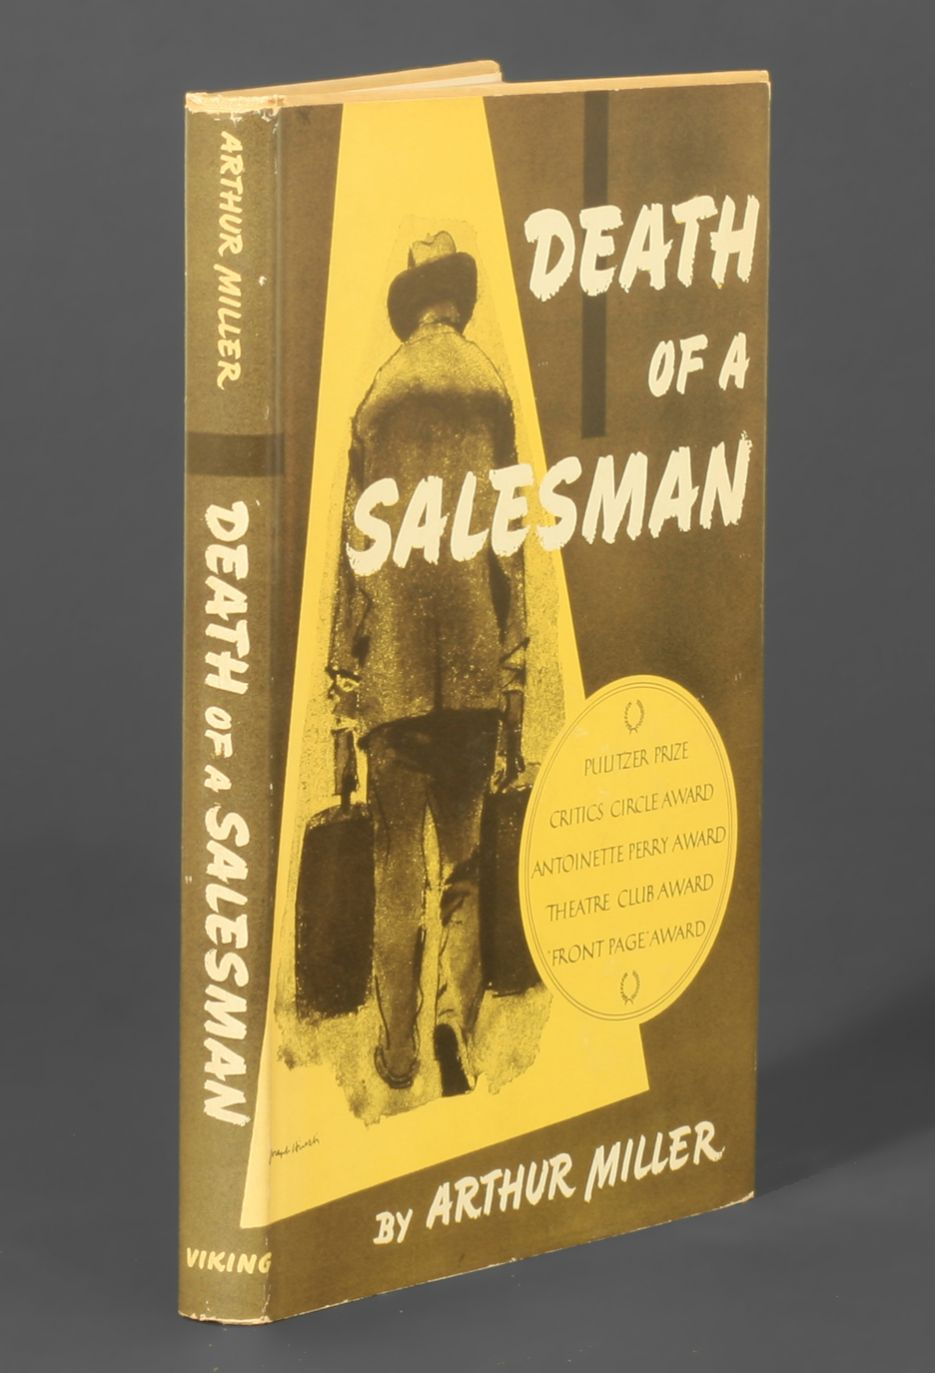 death of a salesman arthur miller Find great deals on ebay for death of a salesman arthur miller 1949 shop with confidence.